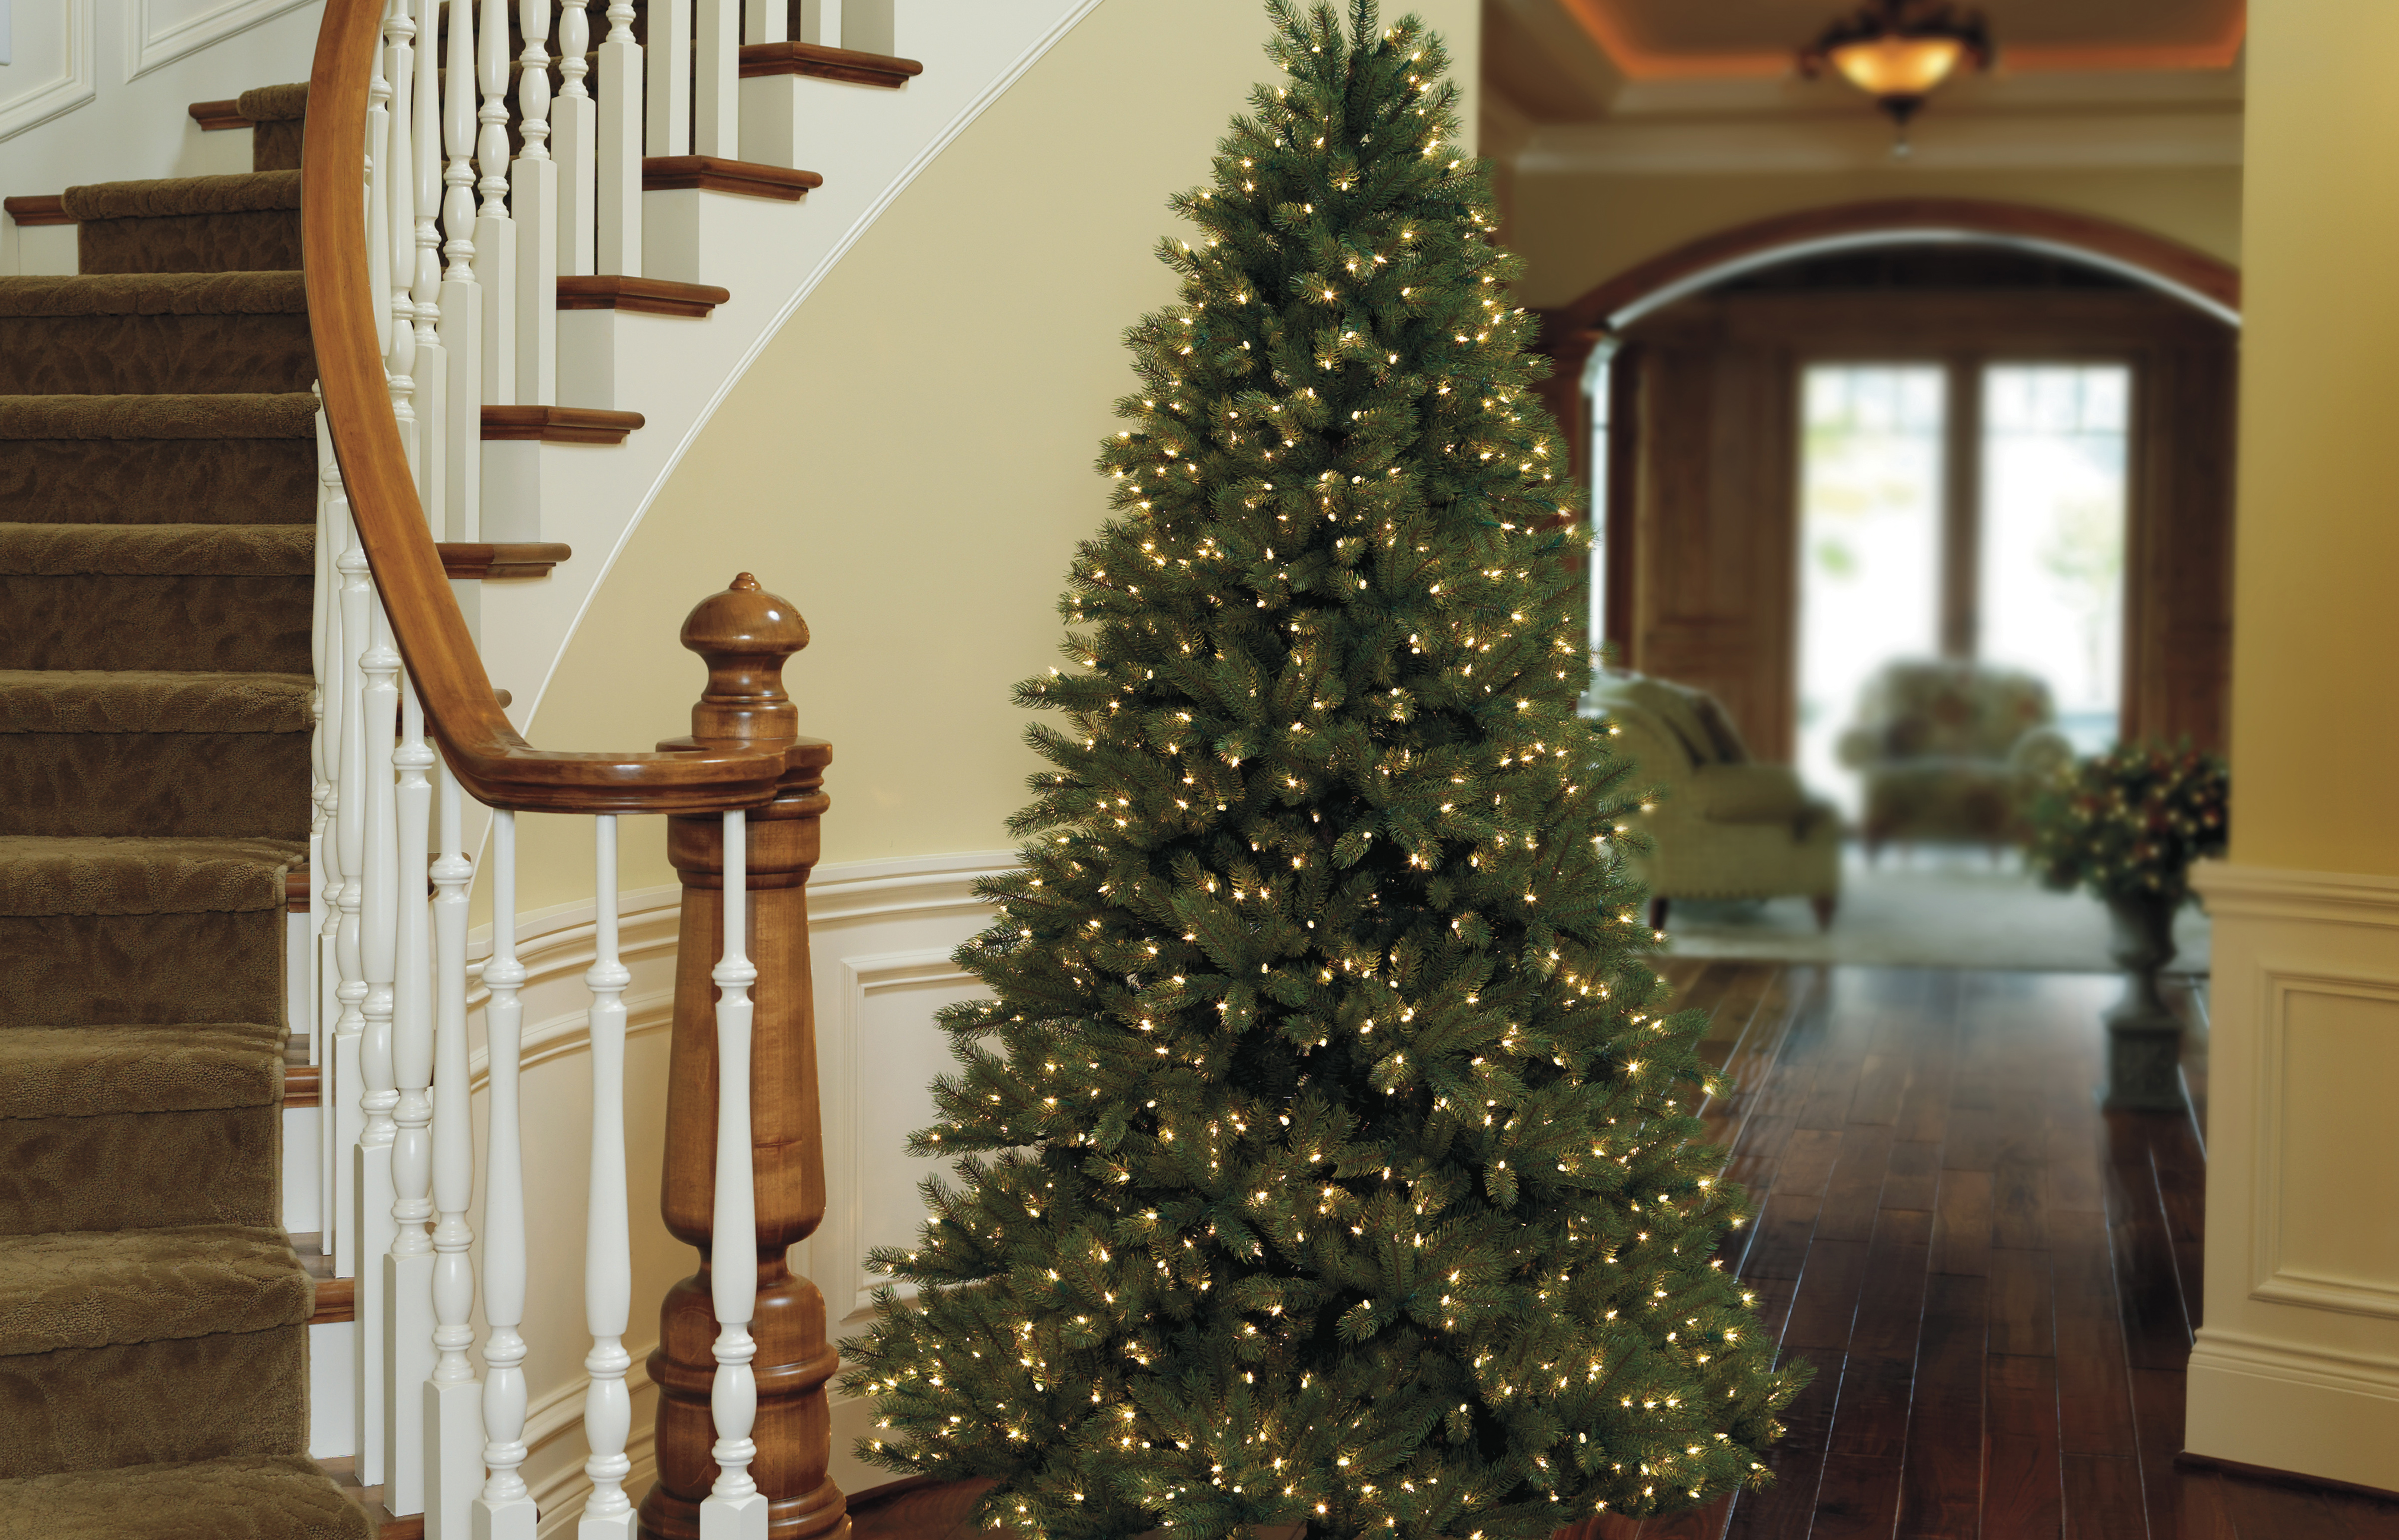 Light Up The Holidays: Seasonal Home Lighting Tips From GE